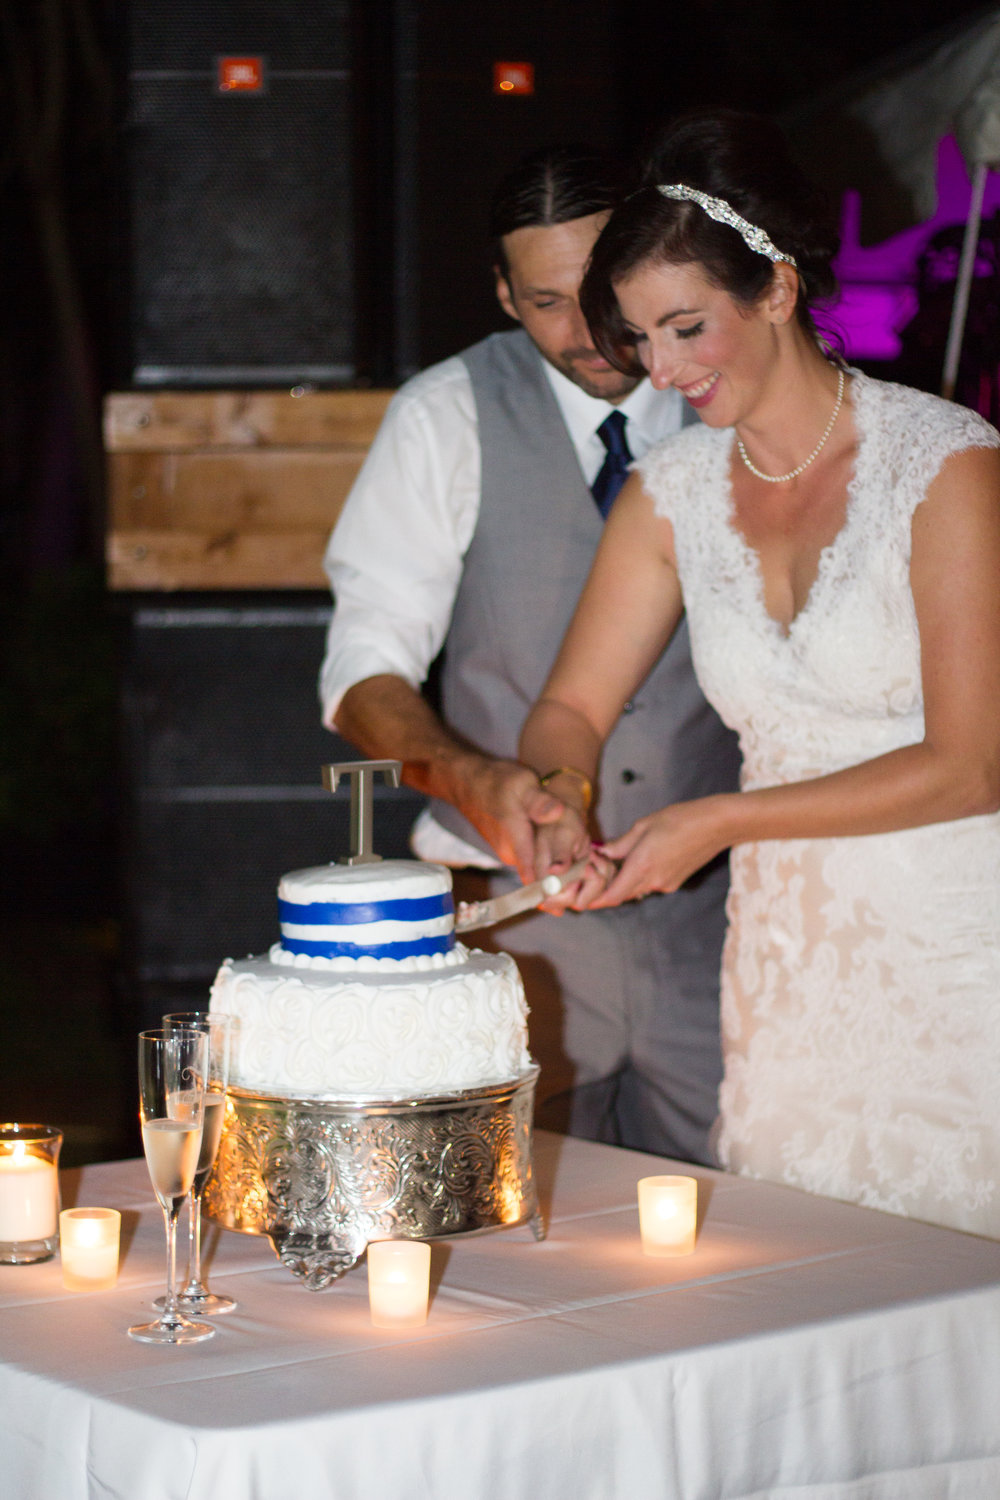 Jacqueline and Shawn Wedding (501 of 597).jpg